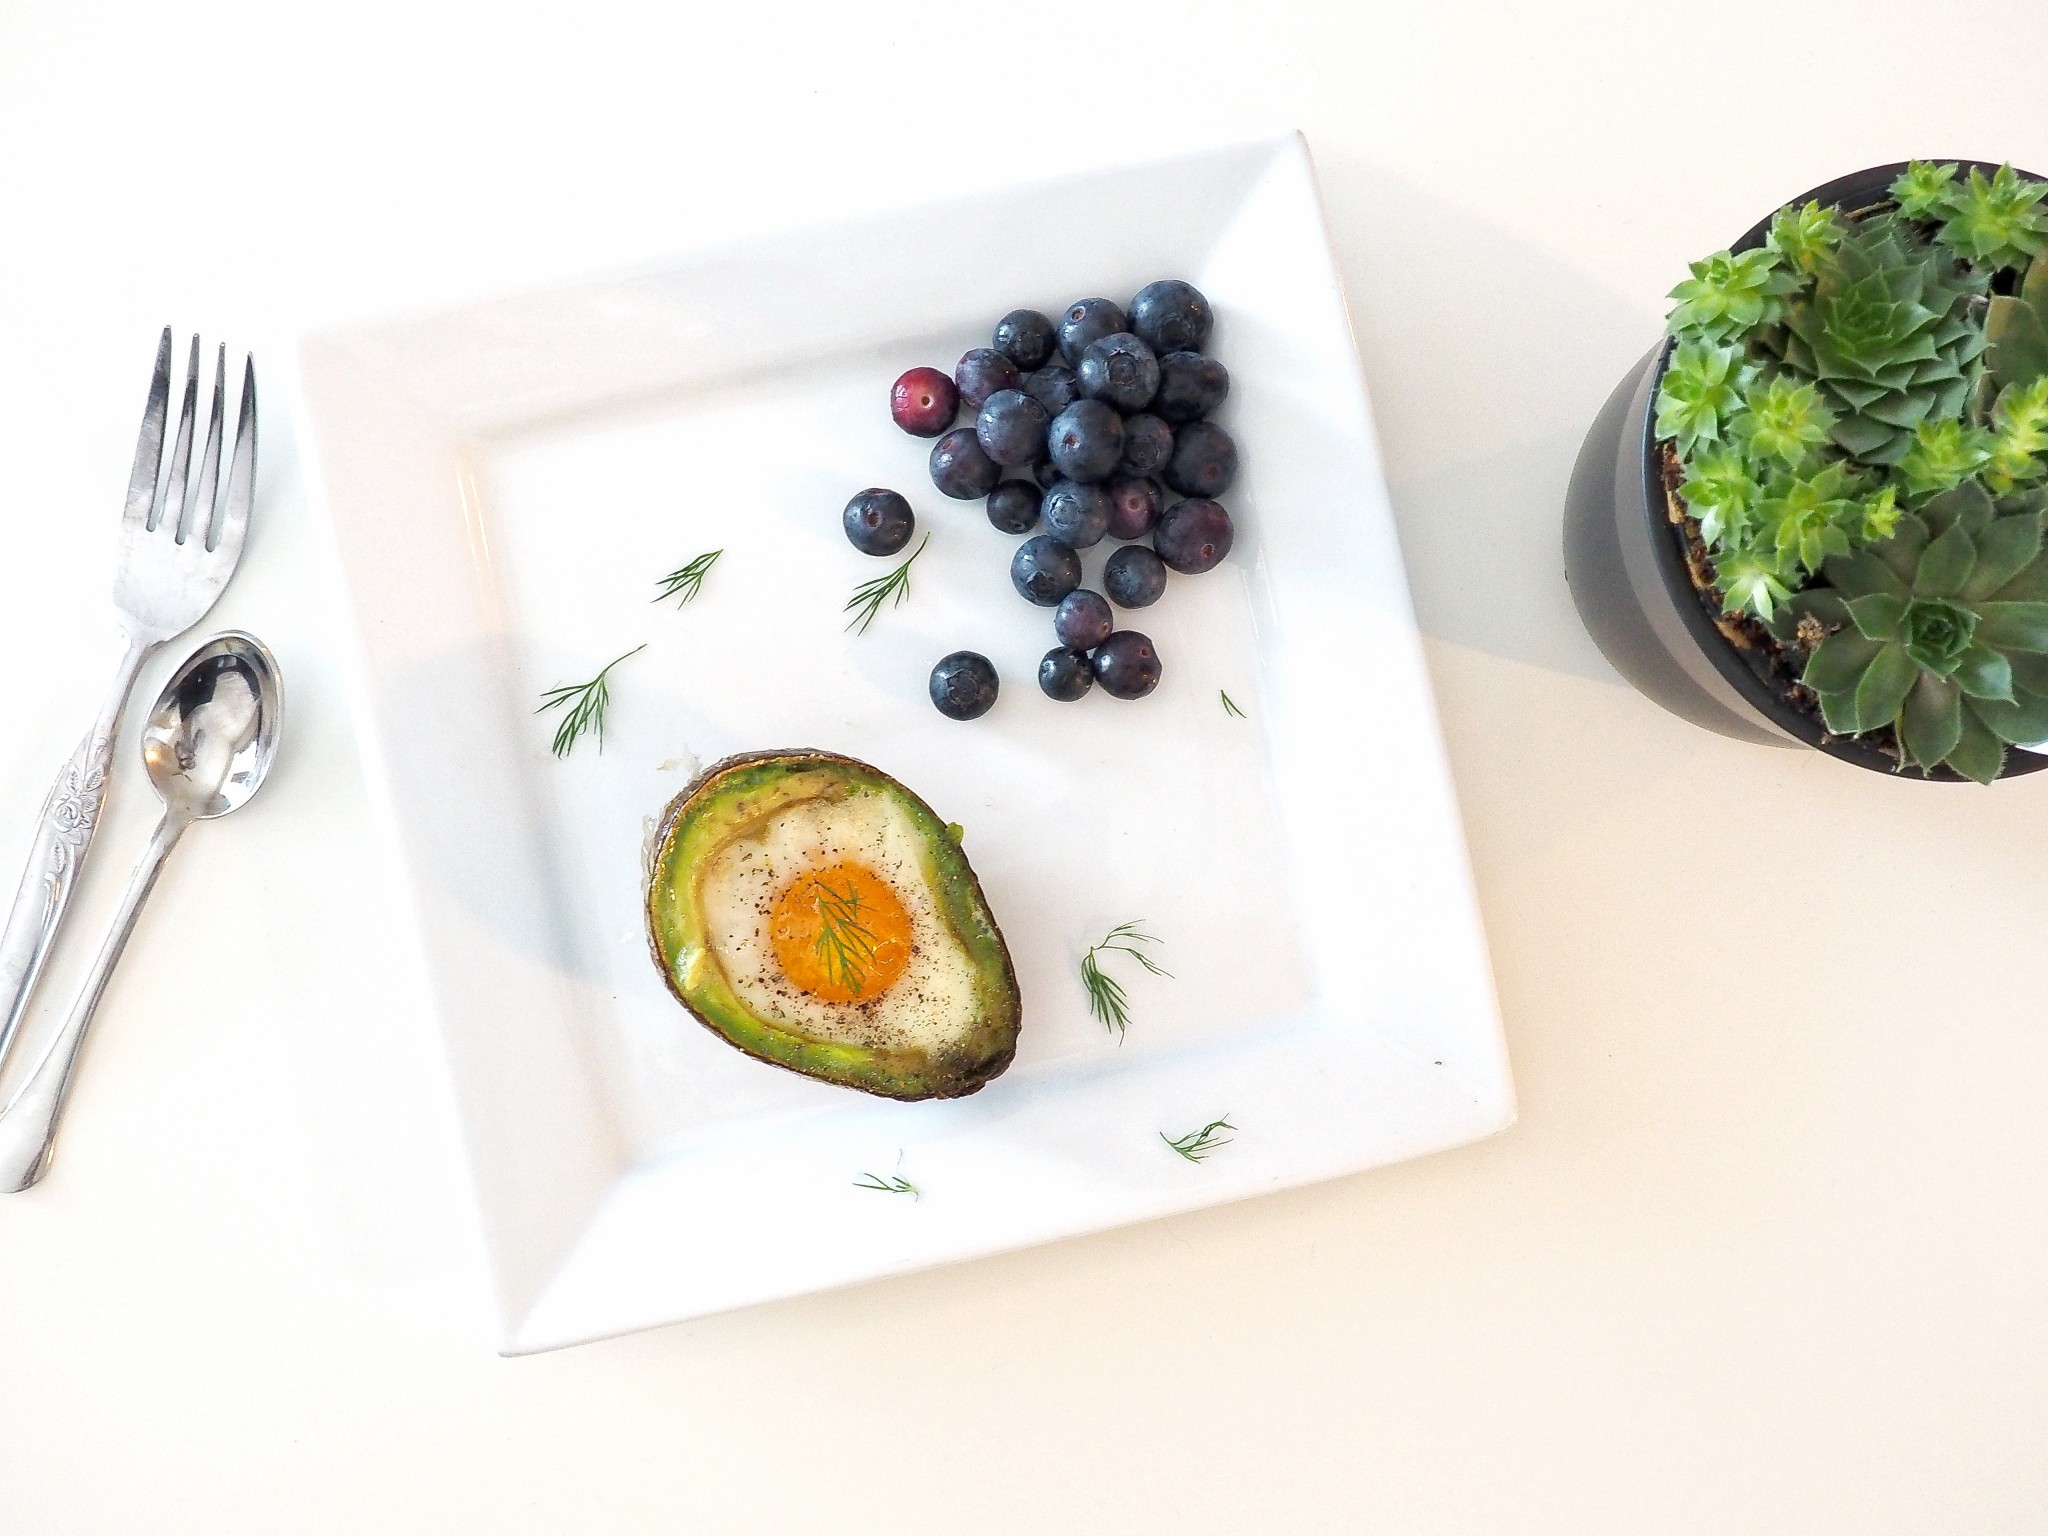 The Ultimate Healthy Breakfast: Avocado Baked Egg